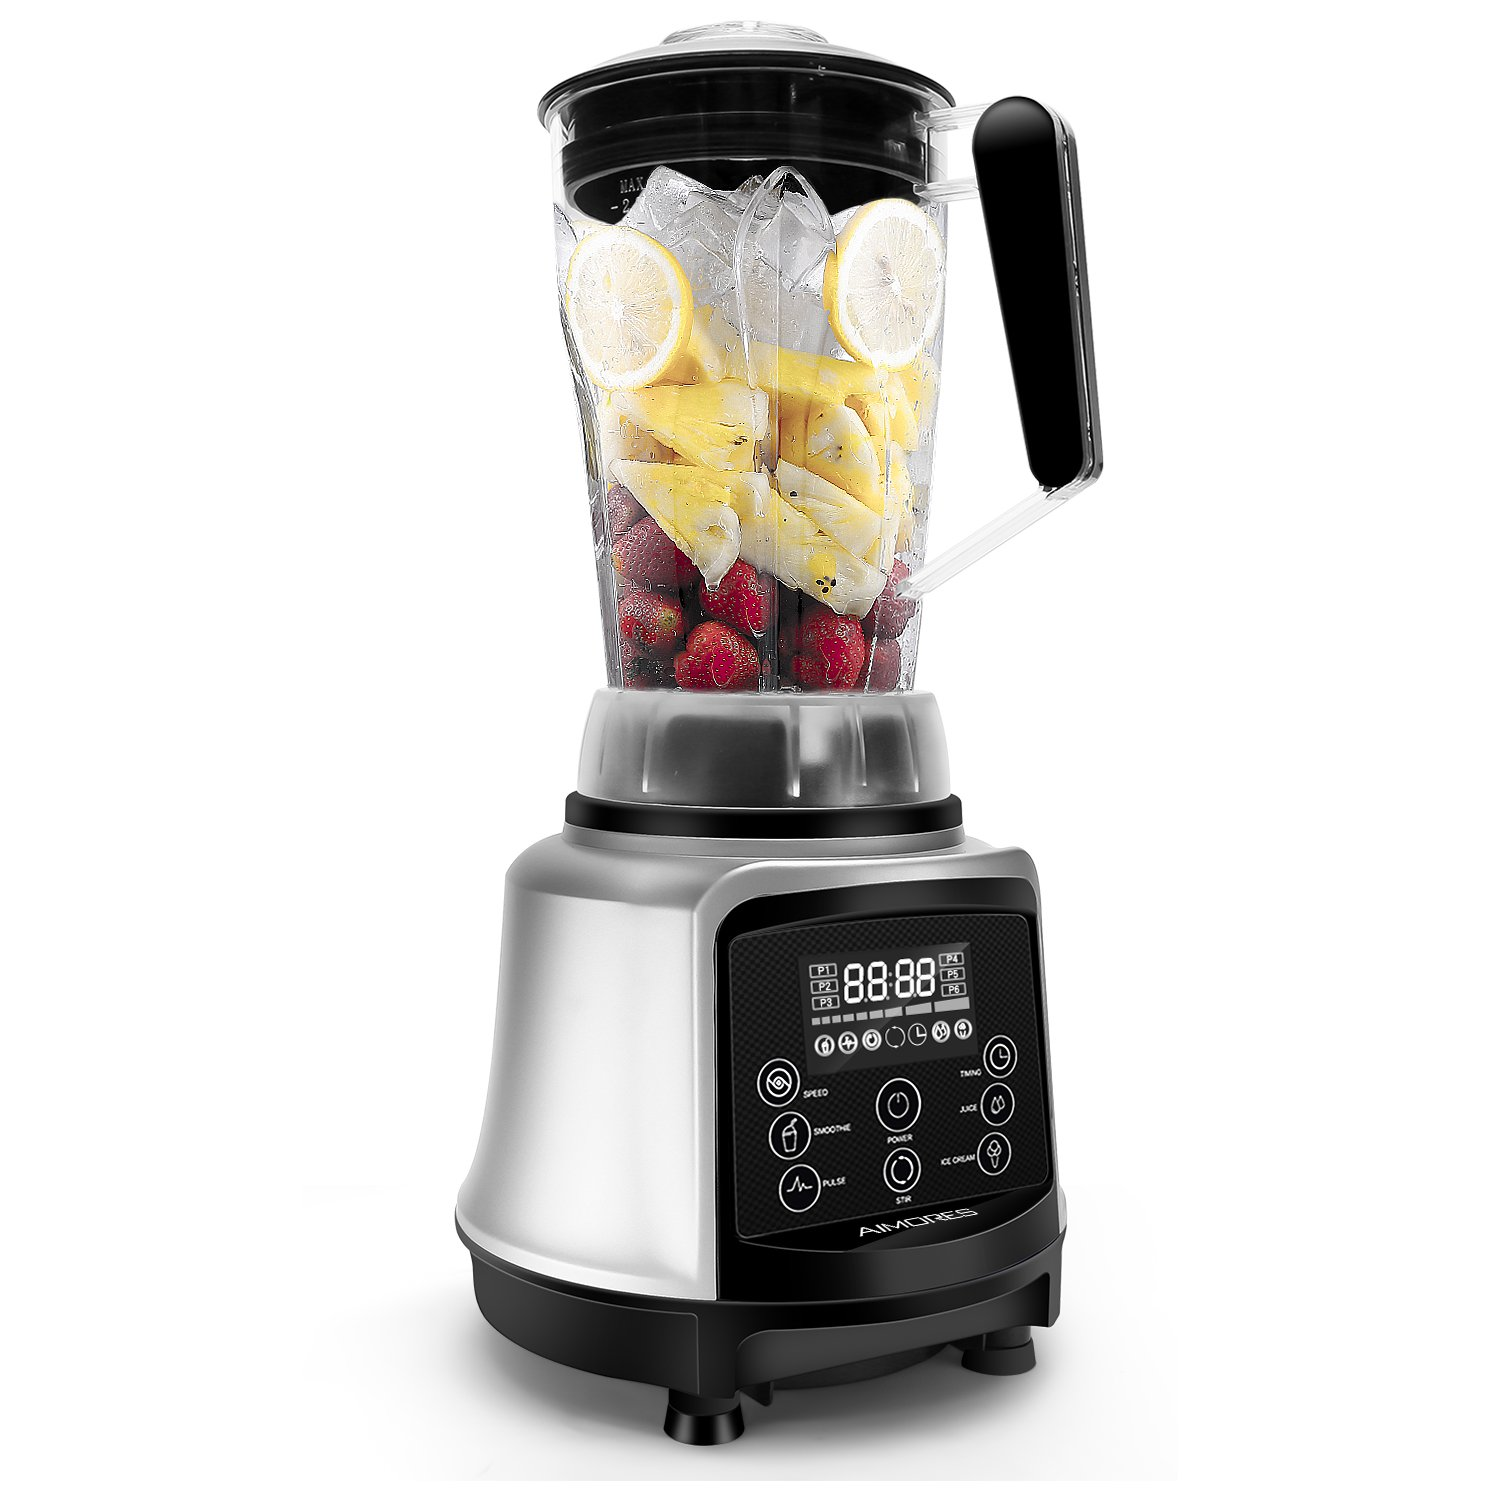 Professional Blender AIMORES for Smoothie | 3-in-1 75oz. High Speed Programmed Juicer Ice Cream Maker | Auto Clean, 6 Blades, w/ Recipe & Tamper | ETL & FDA Certified (Silver)